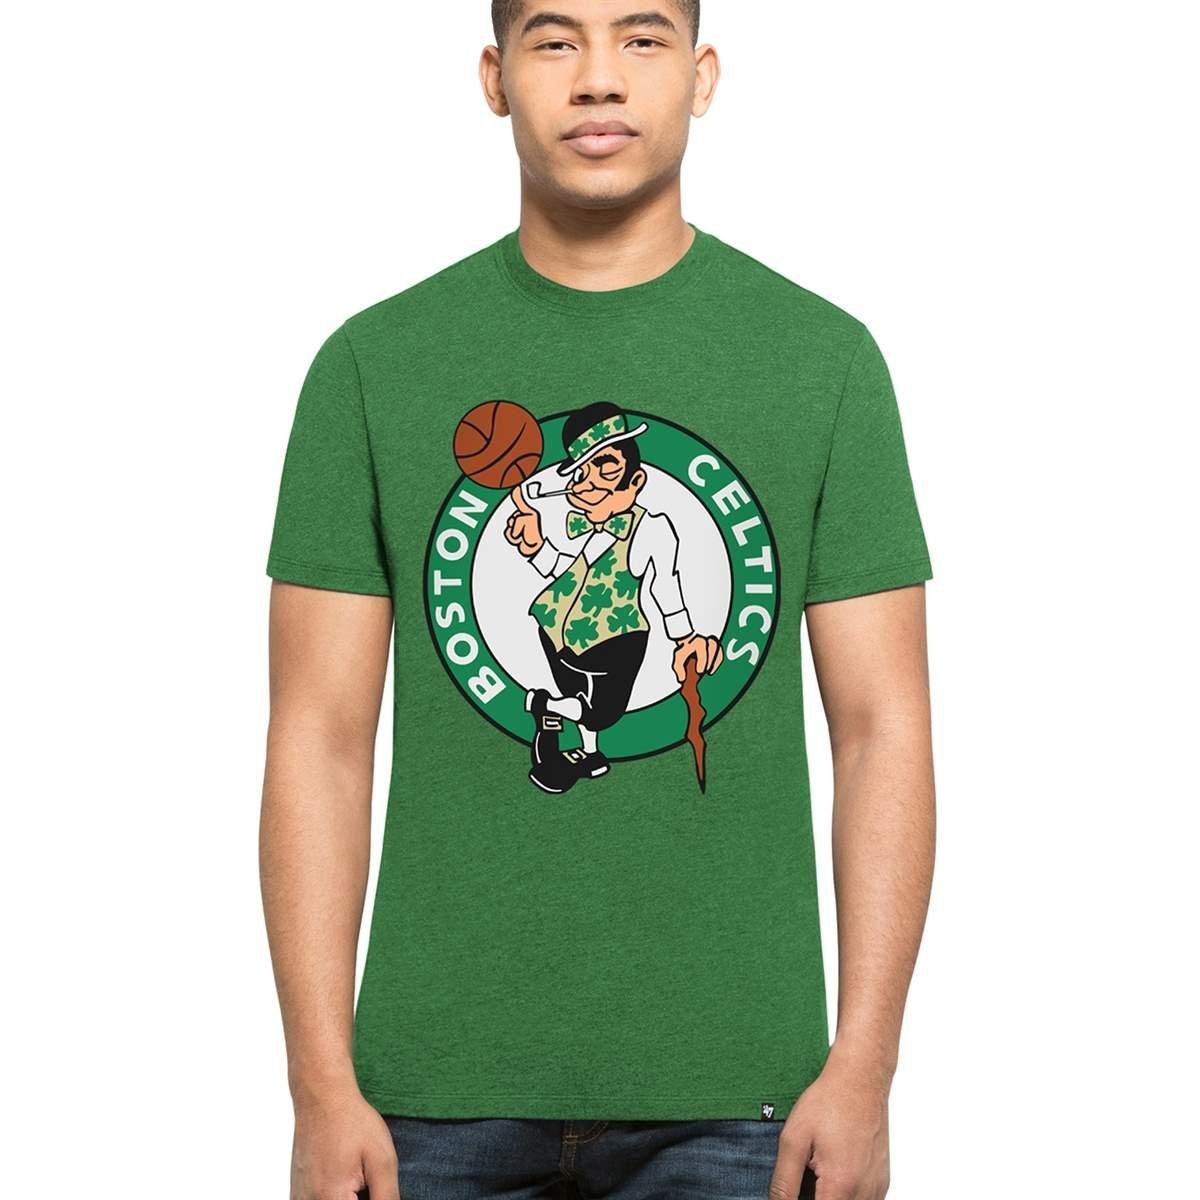 '47 Brand Boston Celtics Club NBA T-Shirt Green 305487GREEN